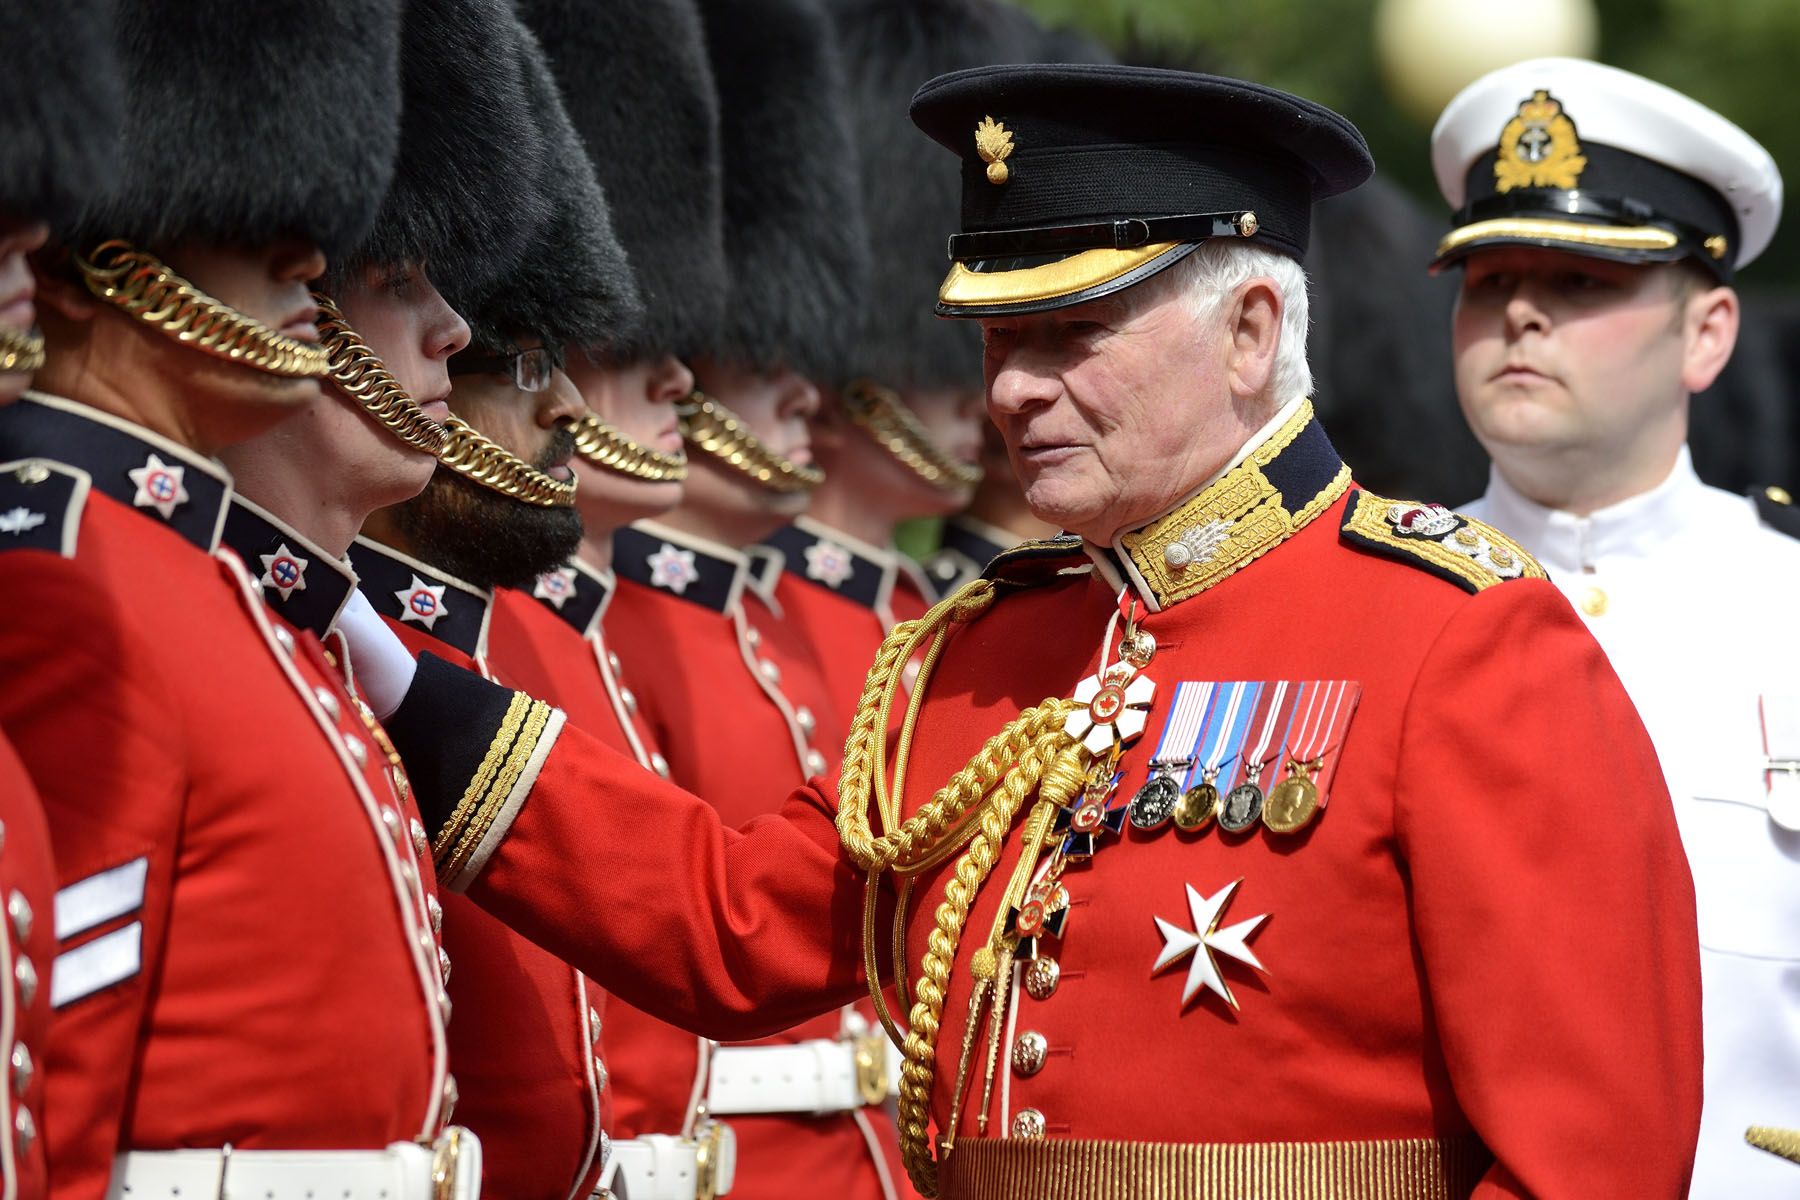 The Governor General inspects the Ceremonial Guard.